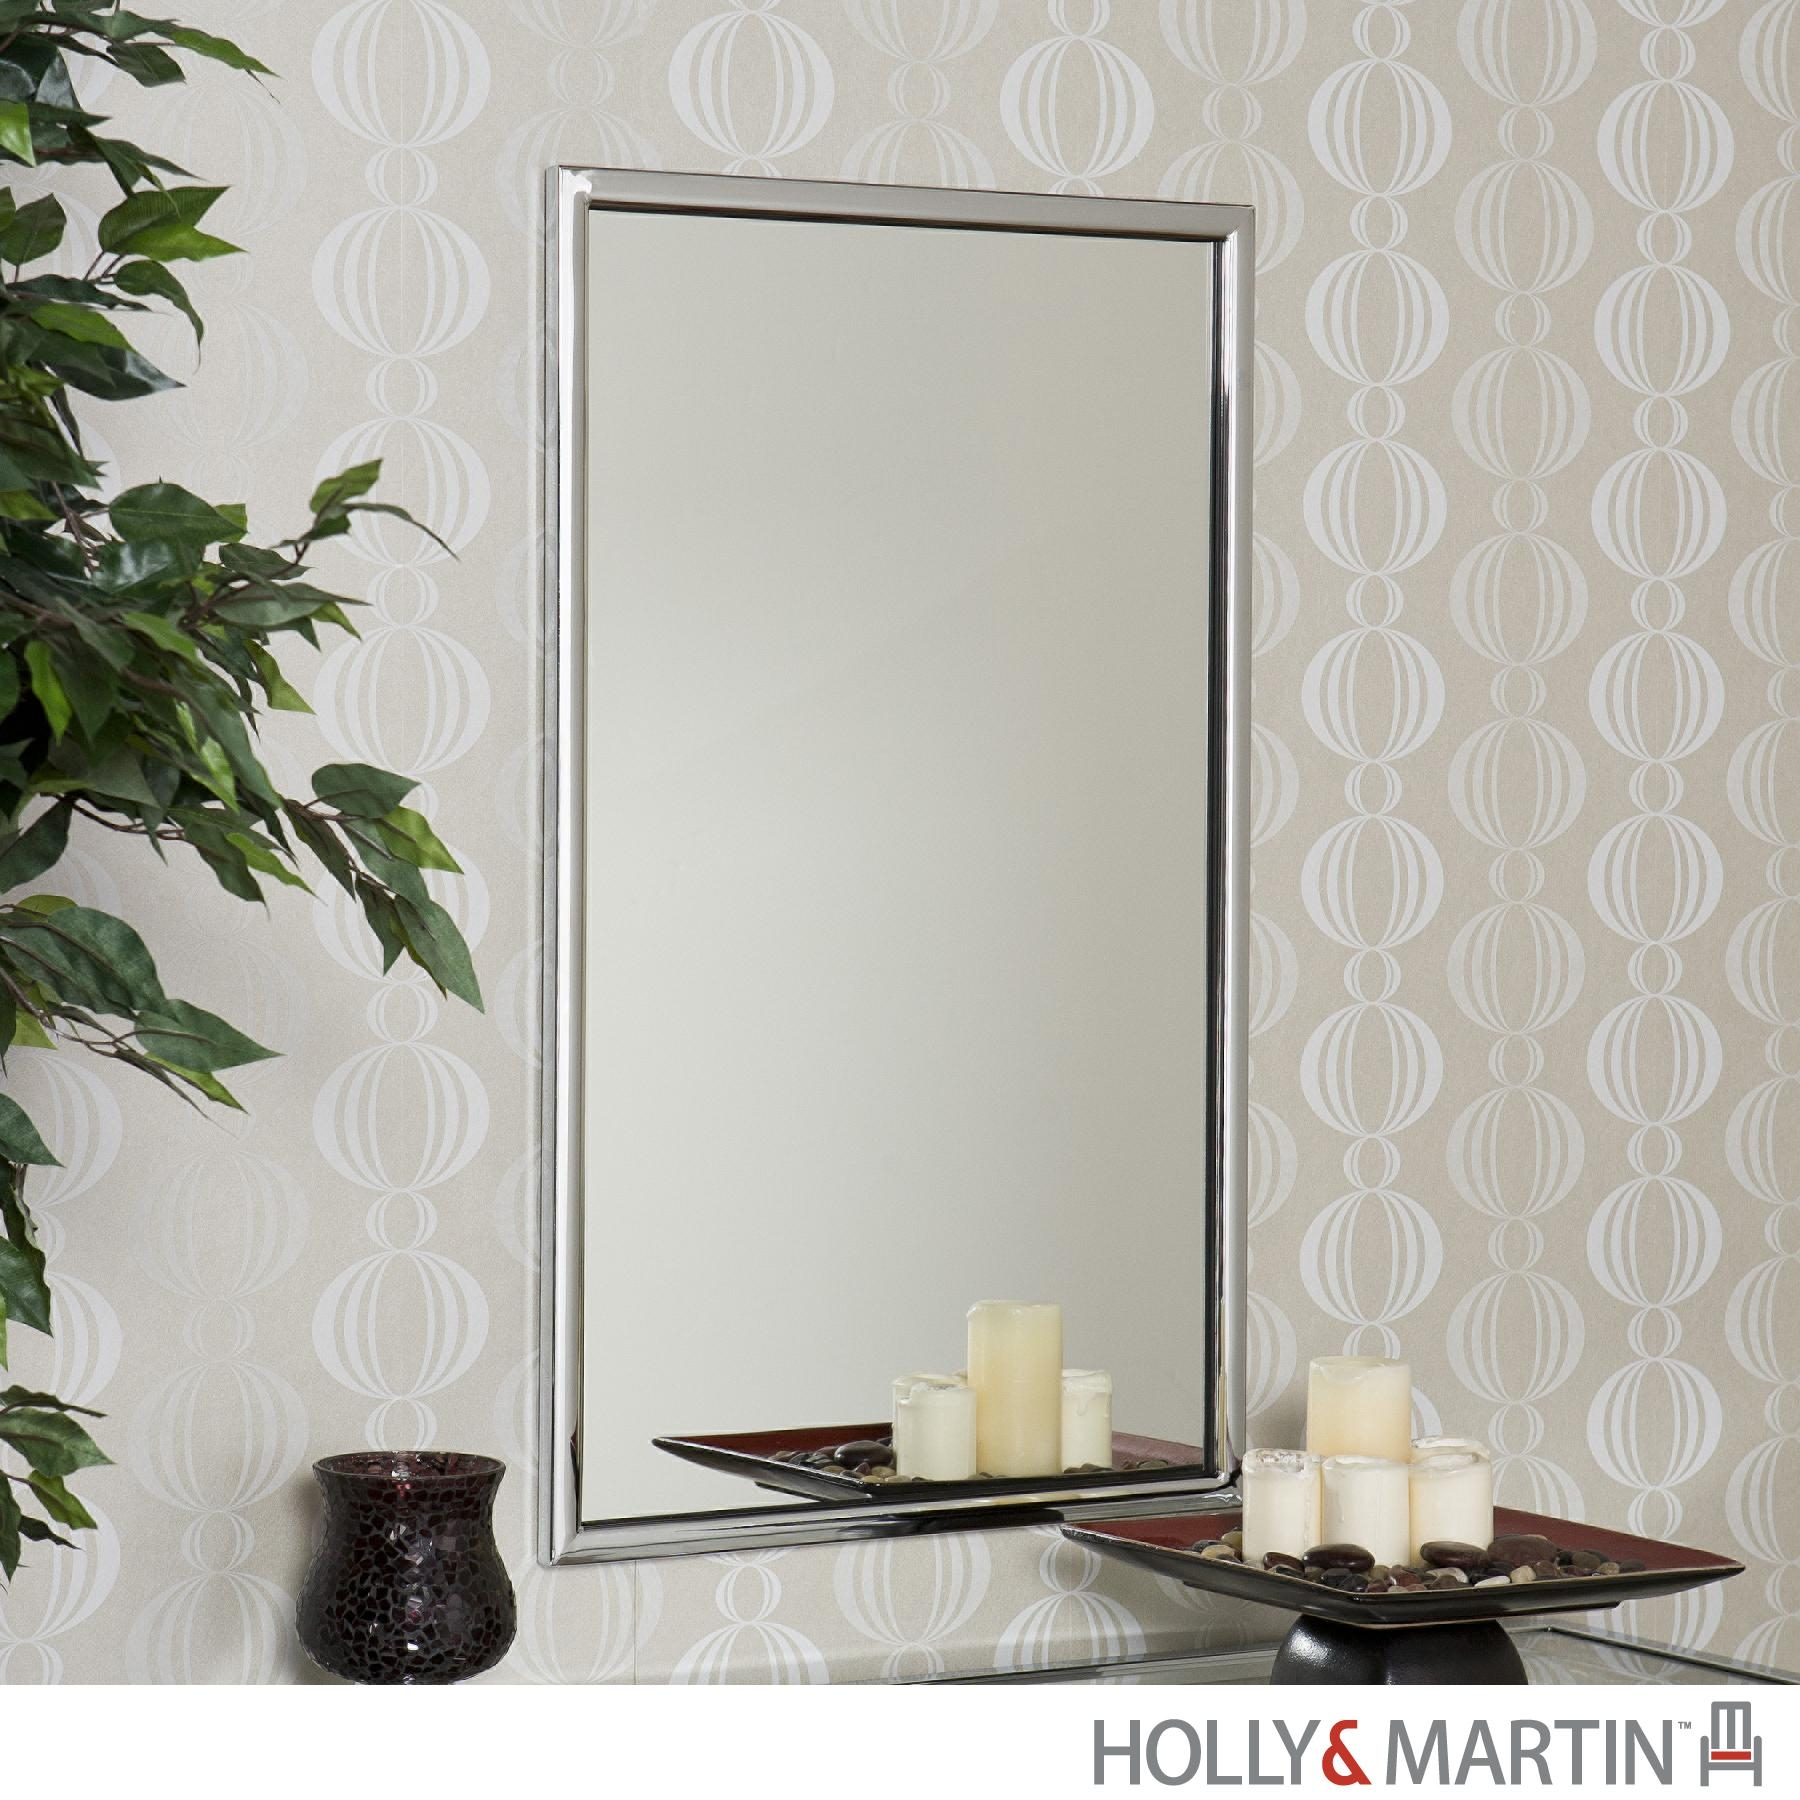 Holly & Martin Roxburgh Chrome Wall Mirror 93 208 019 4 07 Within Chrome Wall Mirror (Image 5 of 20)